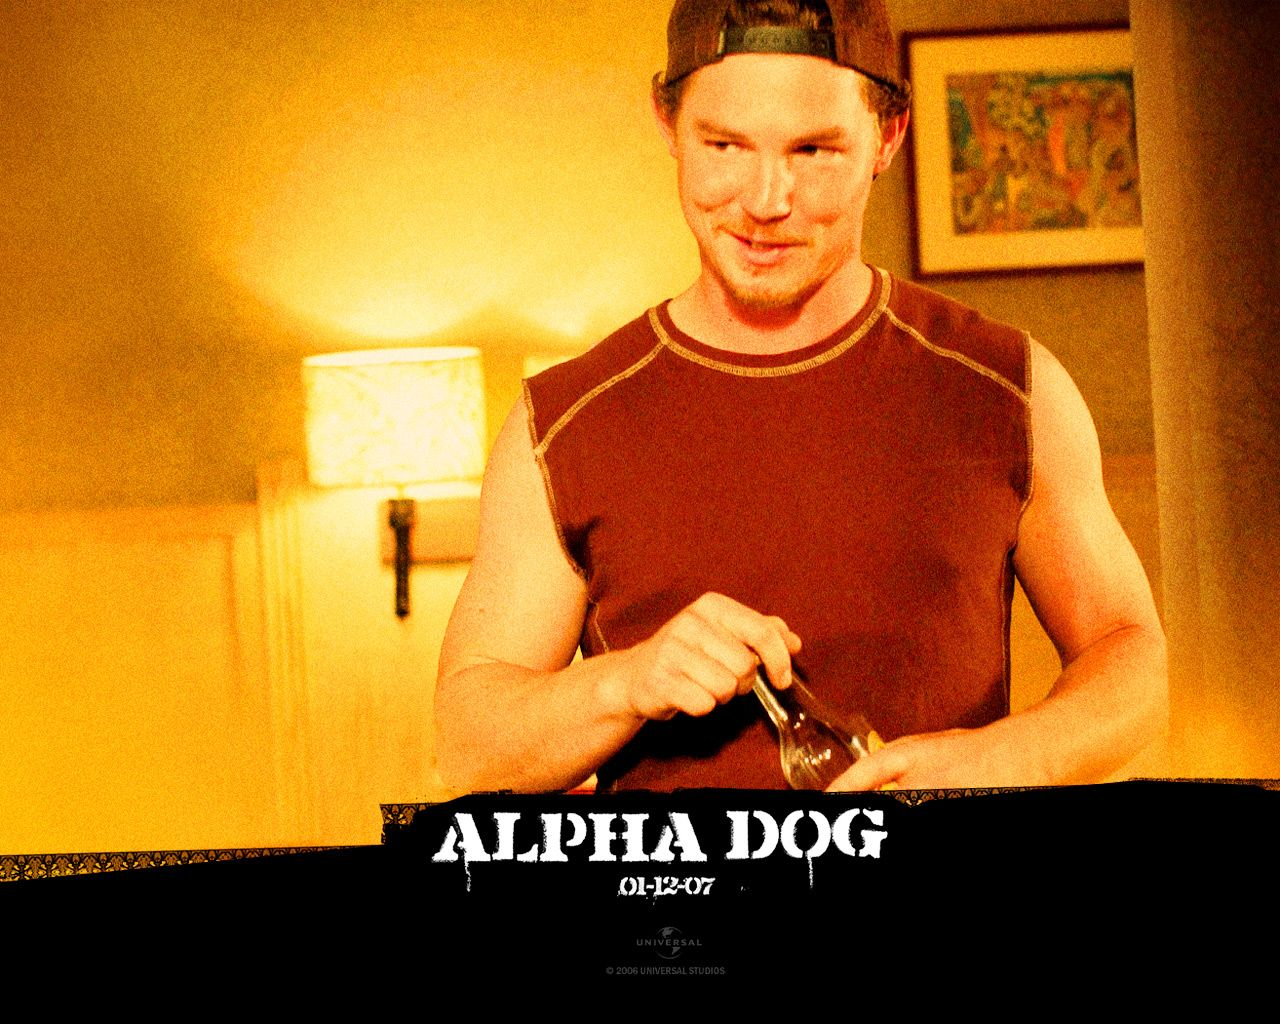 Watch Streaming HD Alpha Dog, starring Emile Hirsch, Justin Timberlake, Anton Yelchin, Bruce Willis. A drama based on the life of Jesse James Hollywood, a drug dealer who became one of the youngest men ever to be on the FBI's most wanted list. #Biography #Crime #Drama http://play.theatrr.com/play.php?movie=0426883